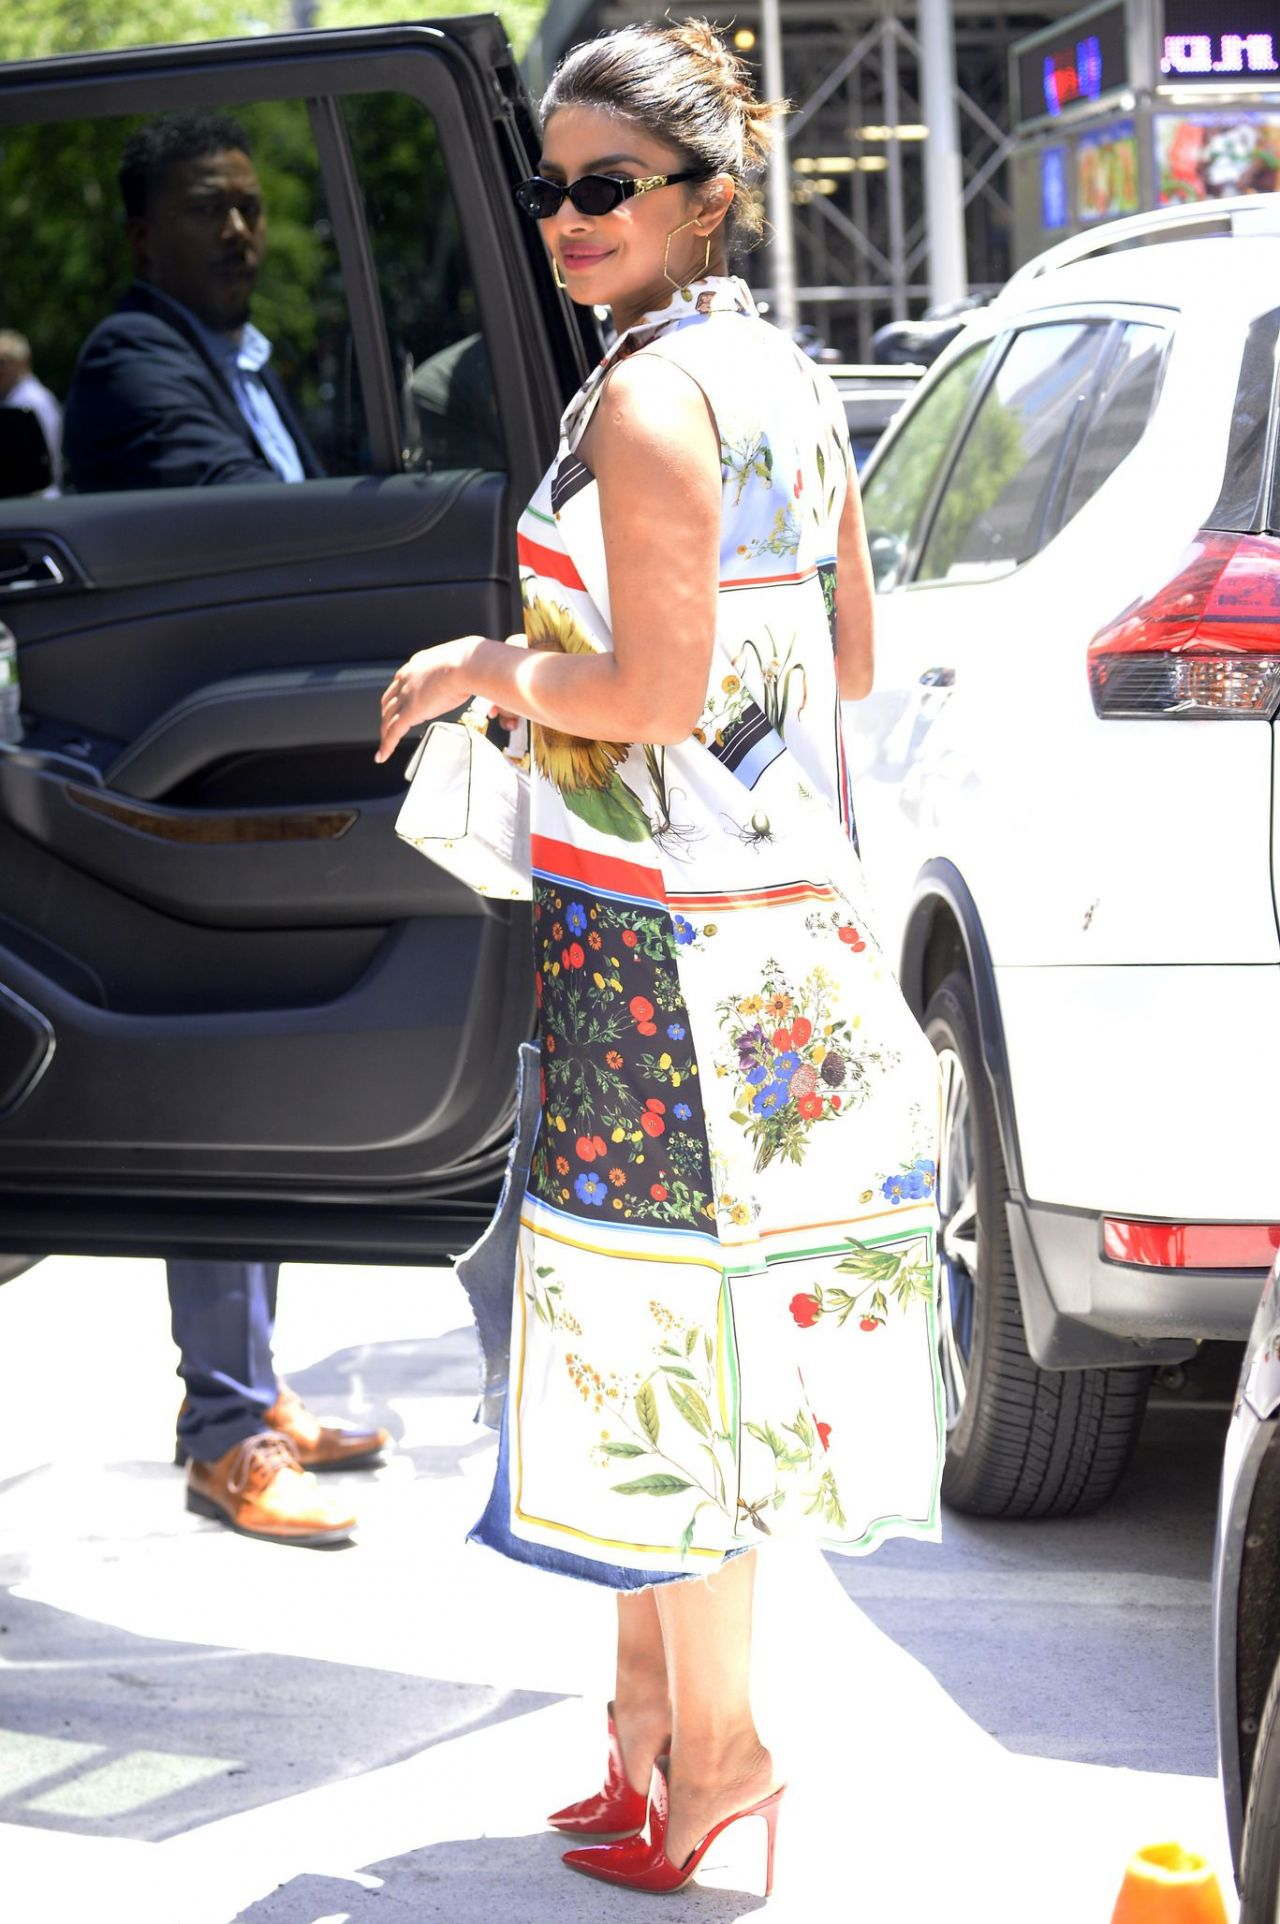 http://celebmafia.com/wp-content/uploads/2018/06/priyanka-chopra-style-heading-out-to-forbes-women-s-summit-in-nyc-06-19-2018-7.jpg